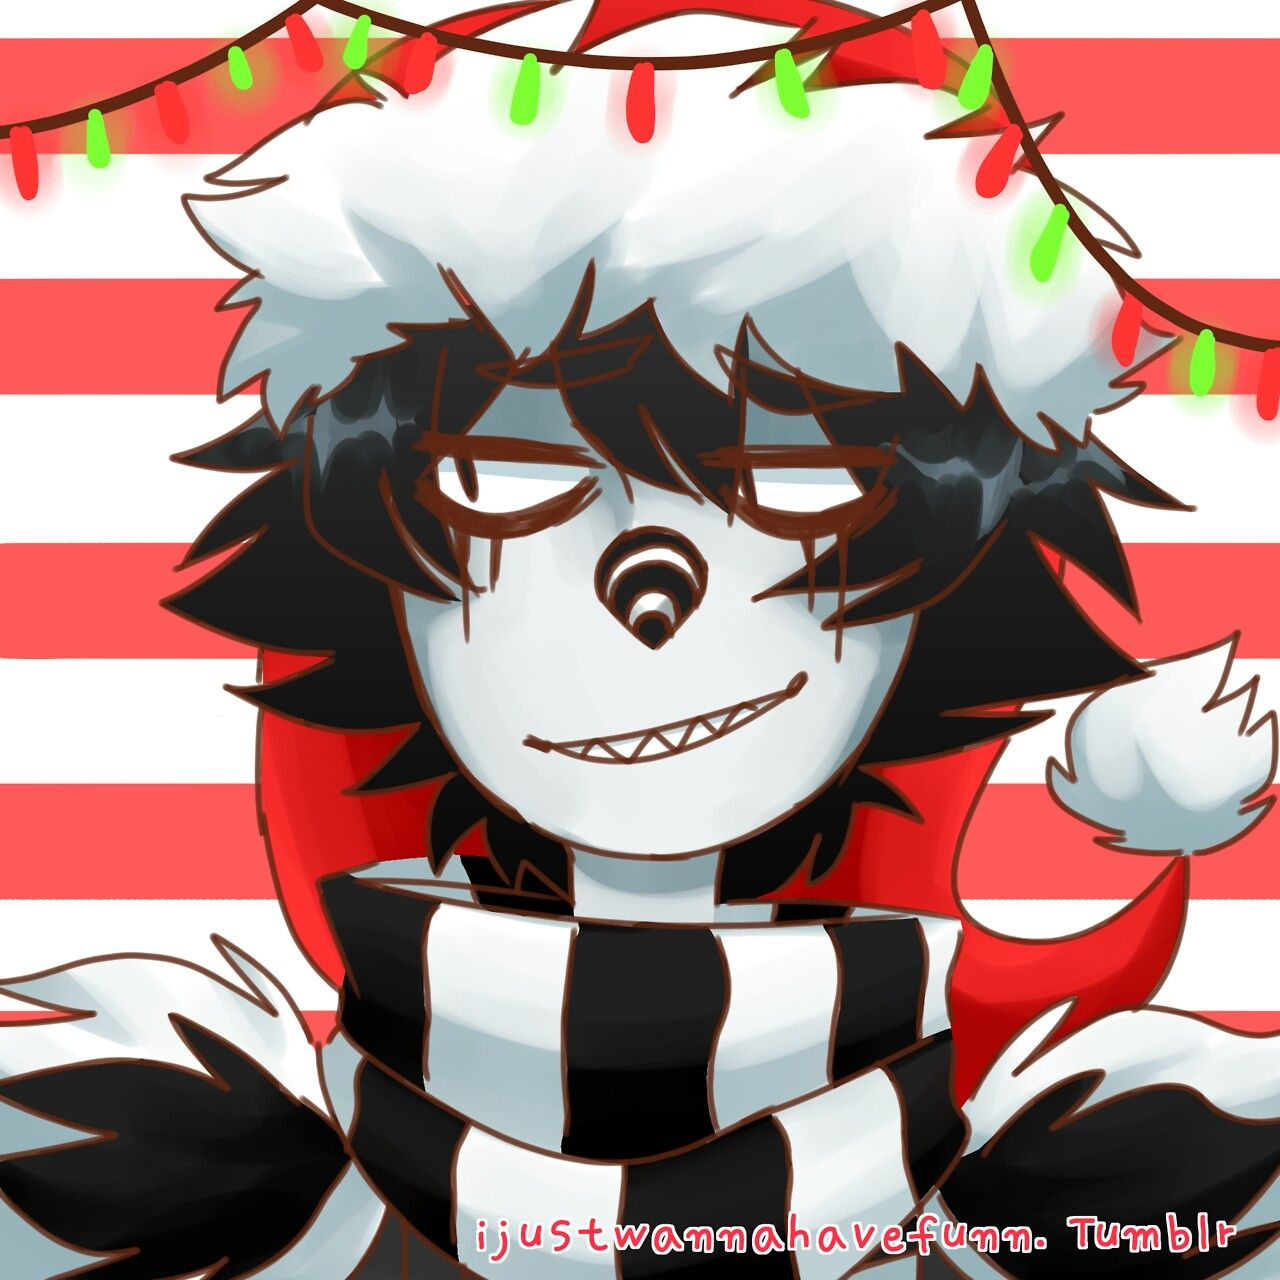 Ijustwannahavefun (With images) Creepypasta cute, Scary